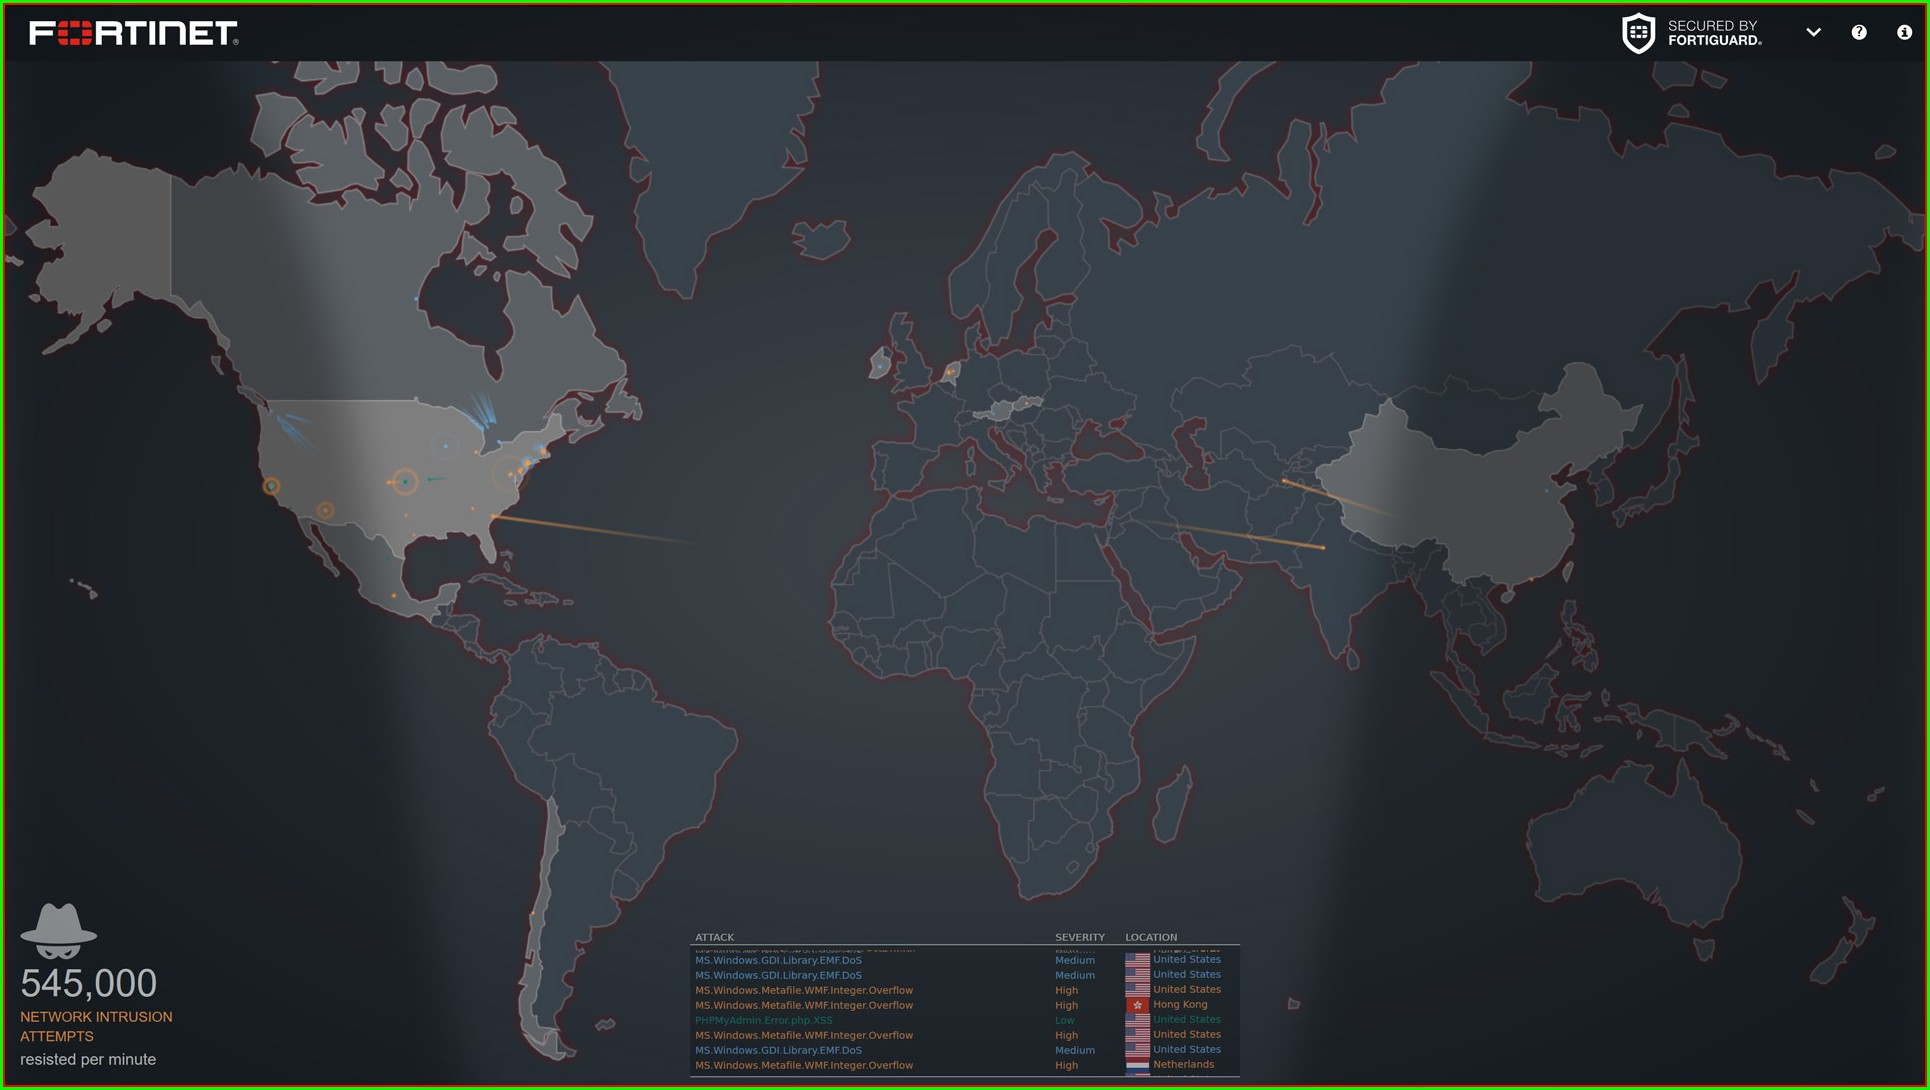 Fortinet Threat Map Not Working